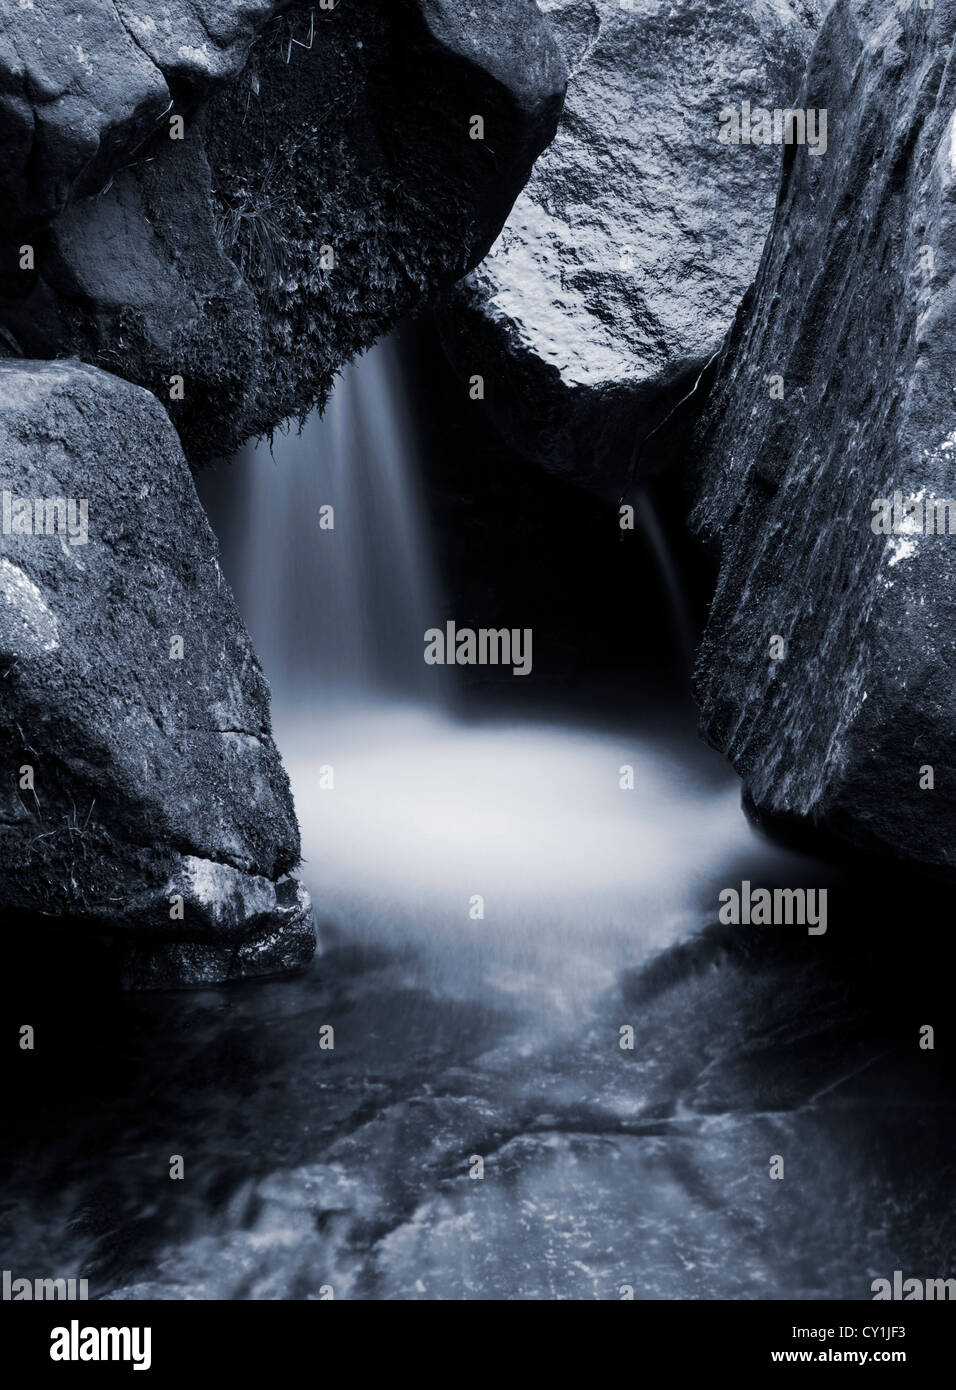 Waterfall with large boulders - Stock Image